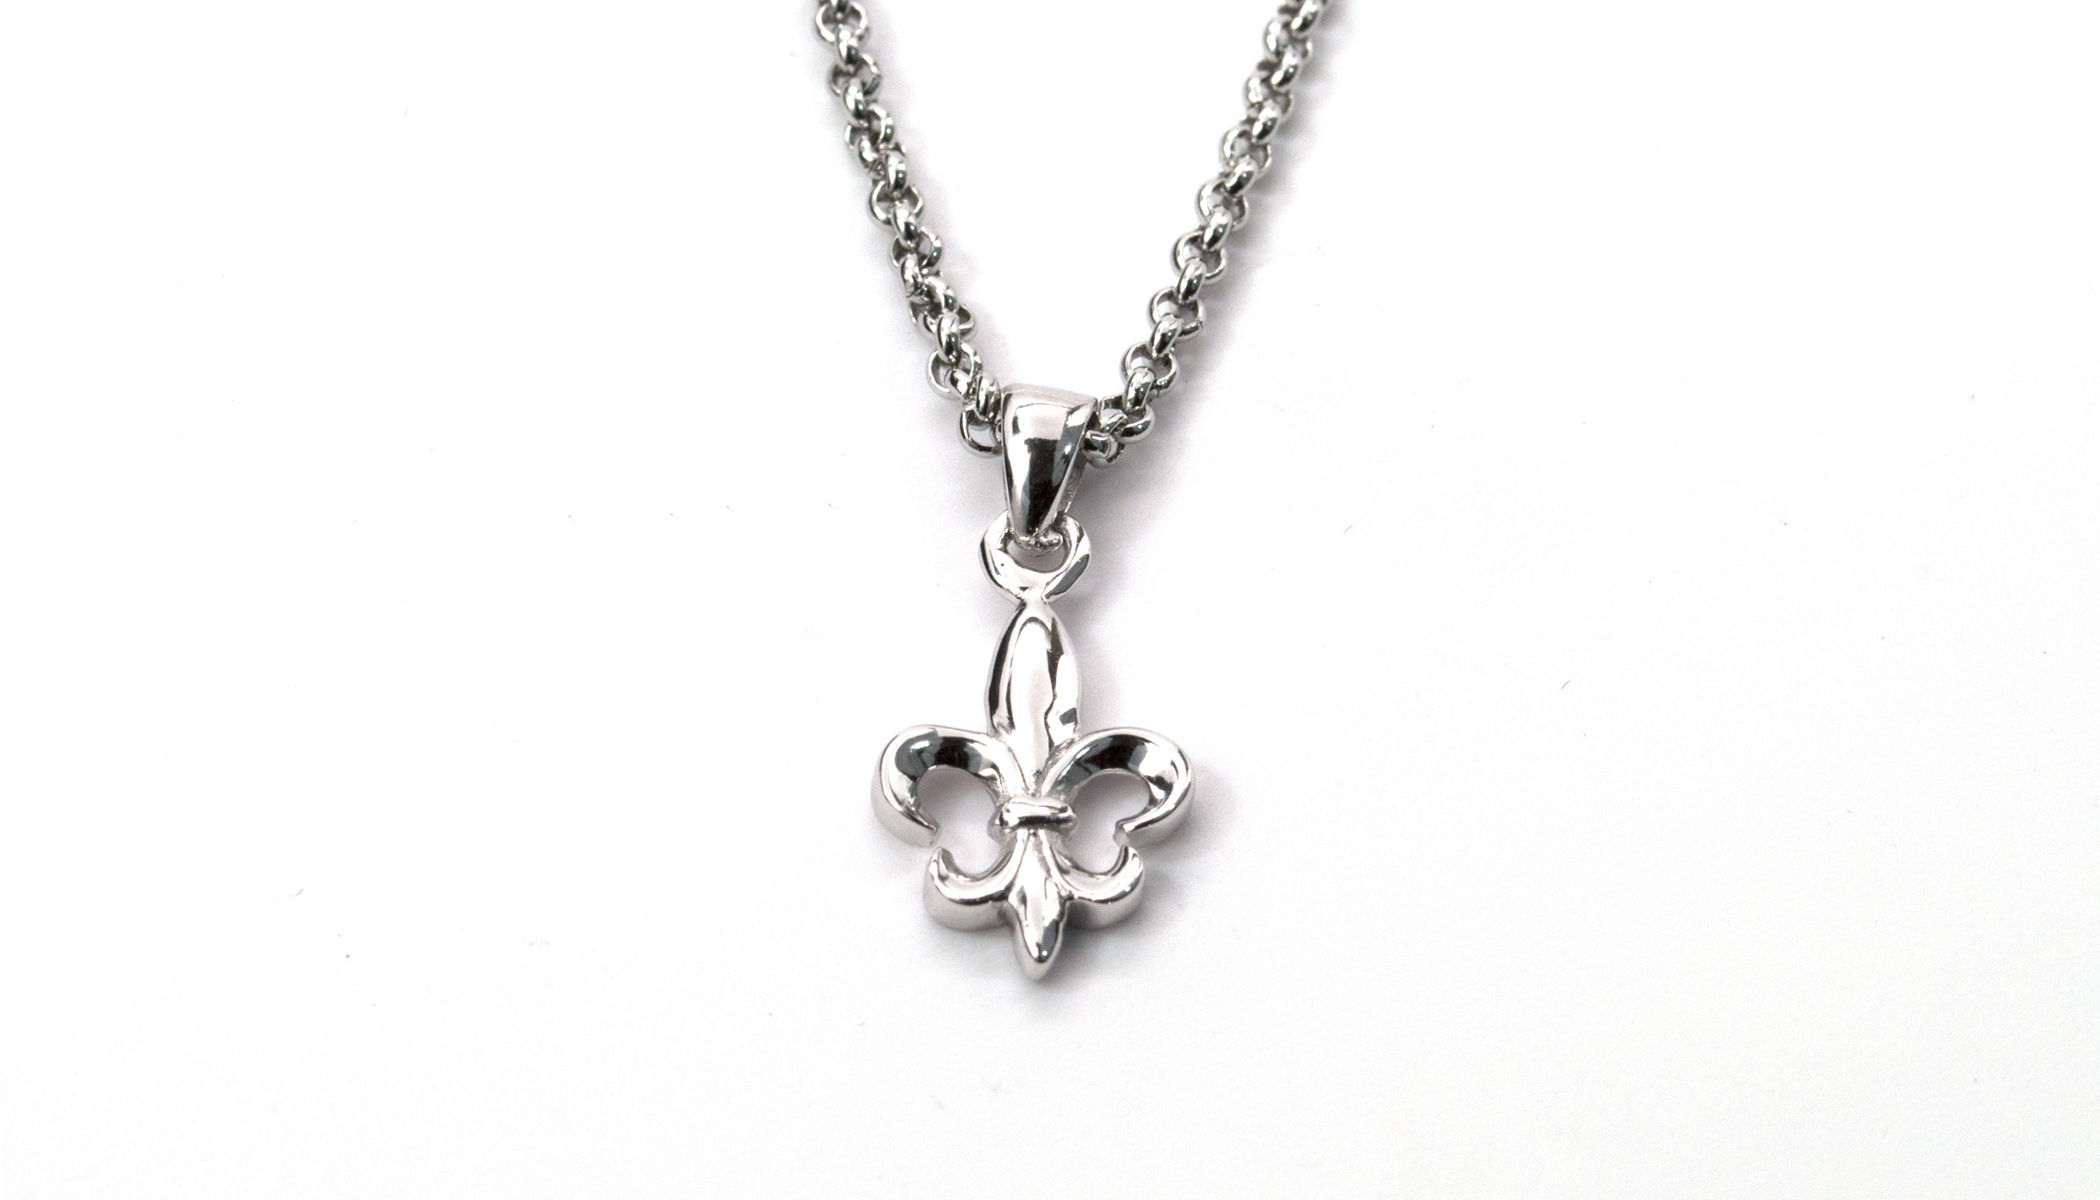 jesus necklace rosary cross ebay beads saints crucifix o itm